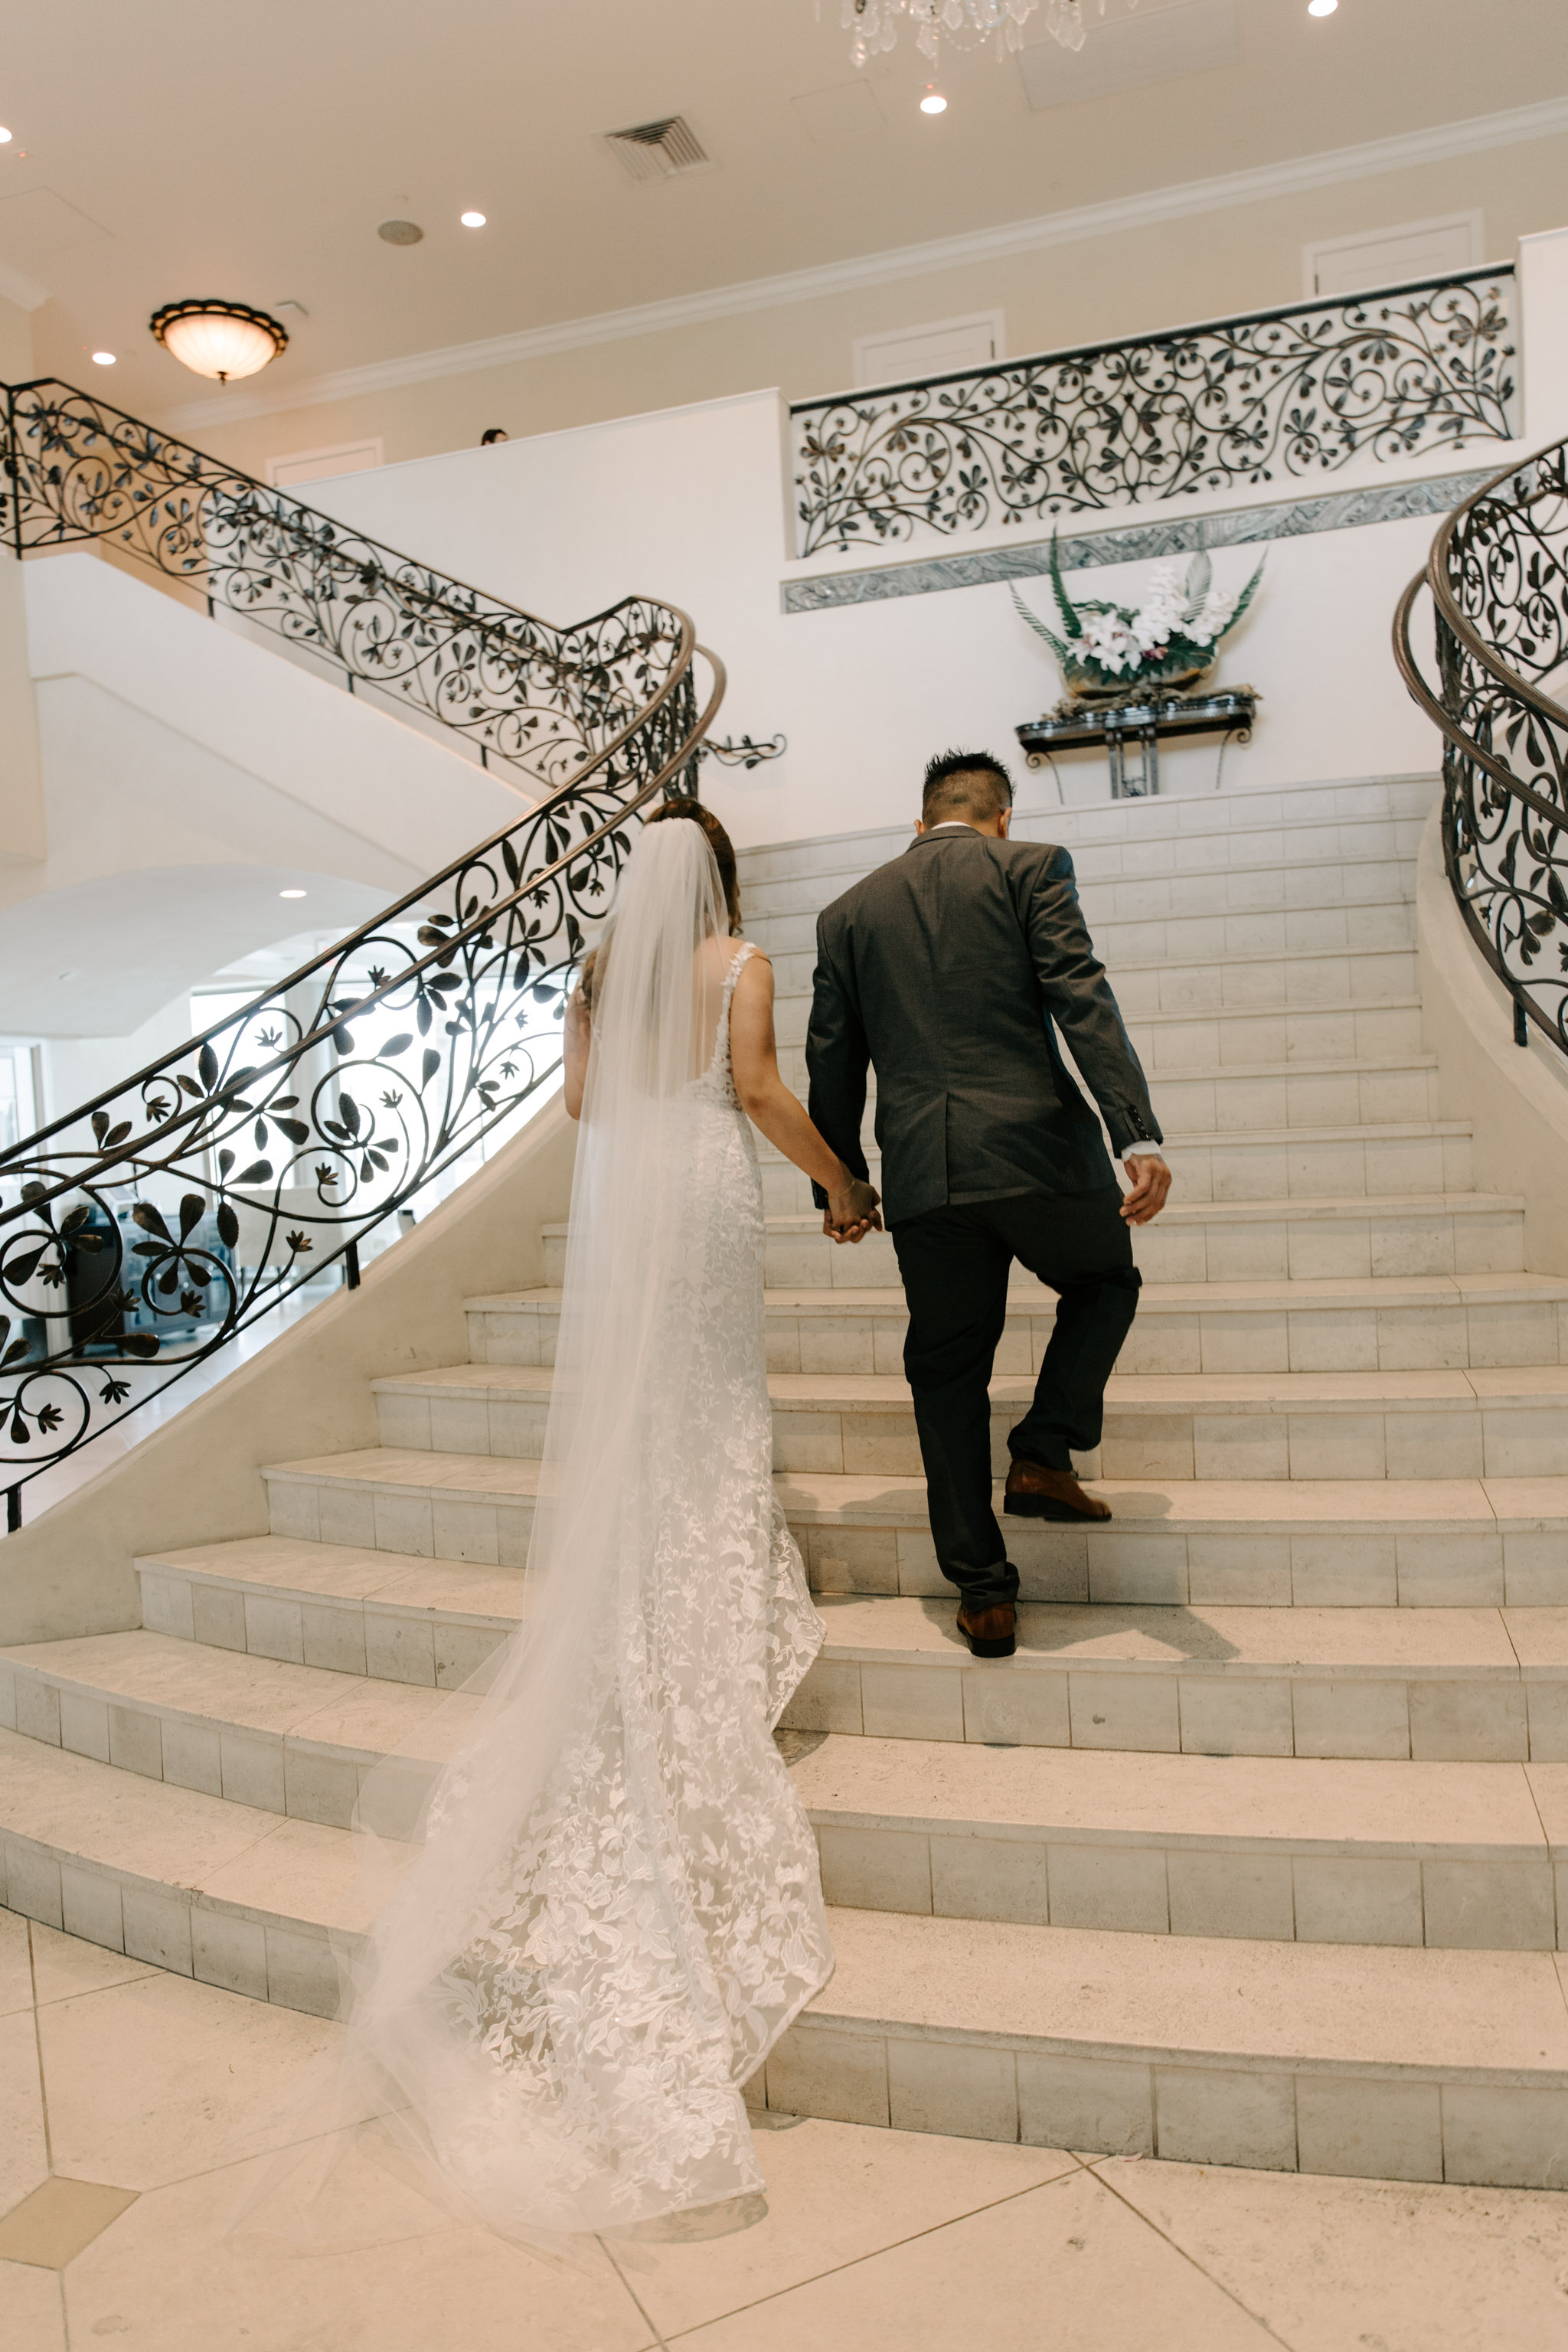 Grand Staircase Wedding Photo -  53 By The Sea Hawaii Wedding By Oahu Wedding Photographer Desiree Leilani